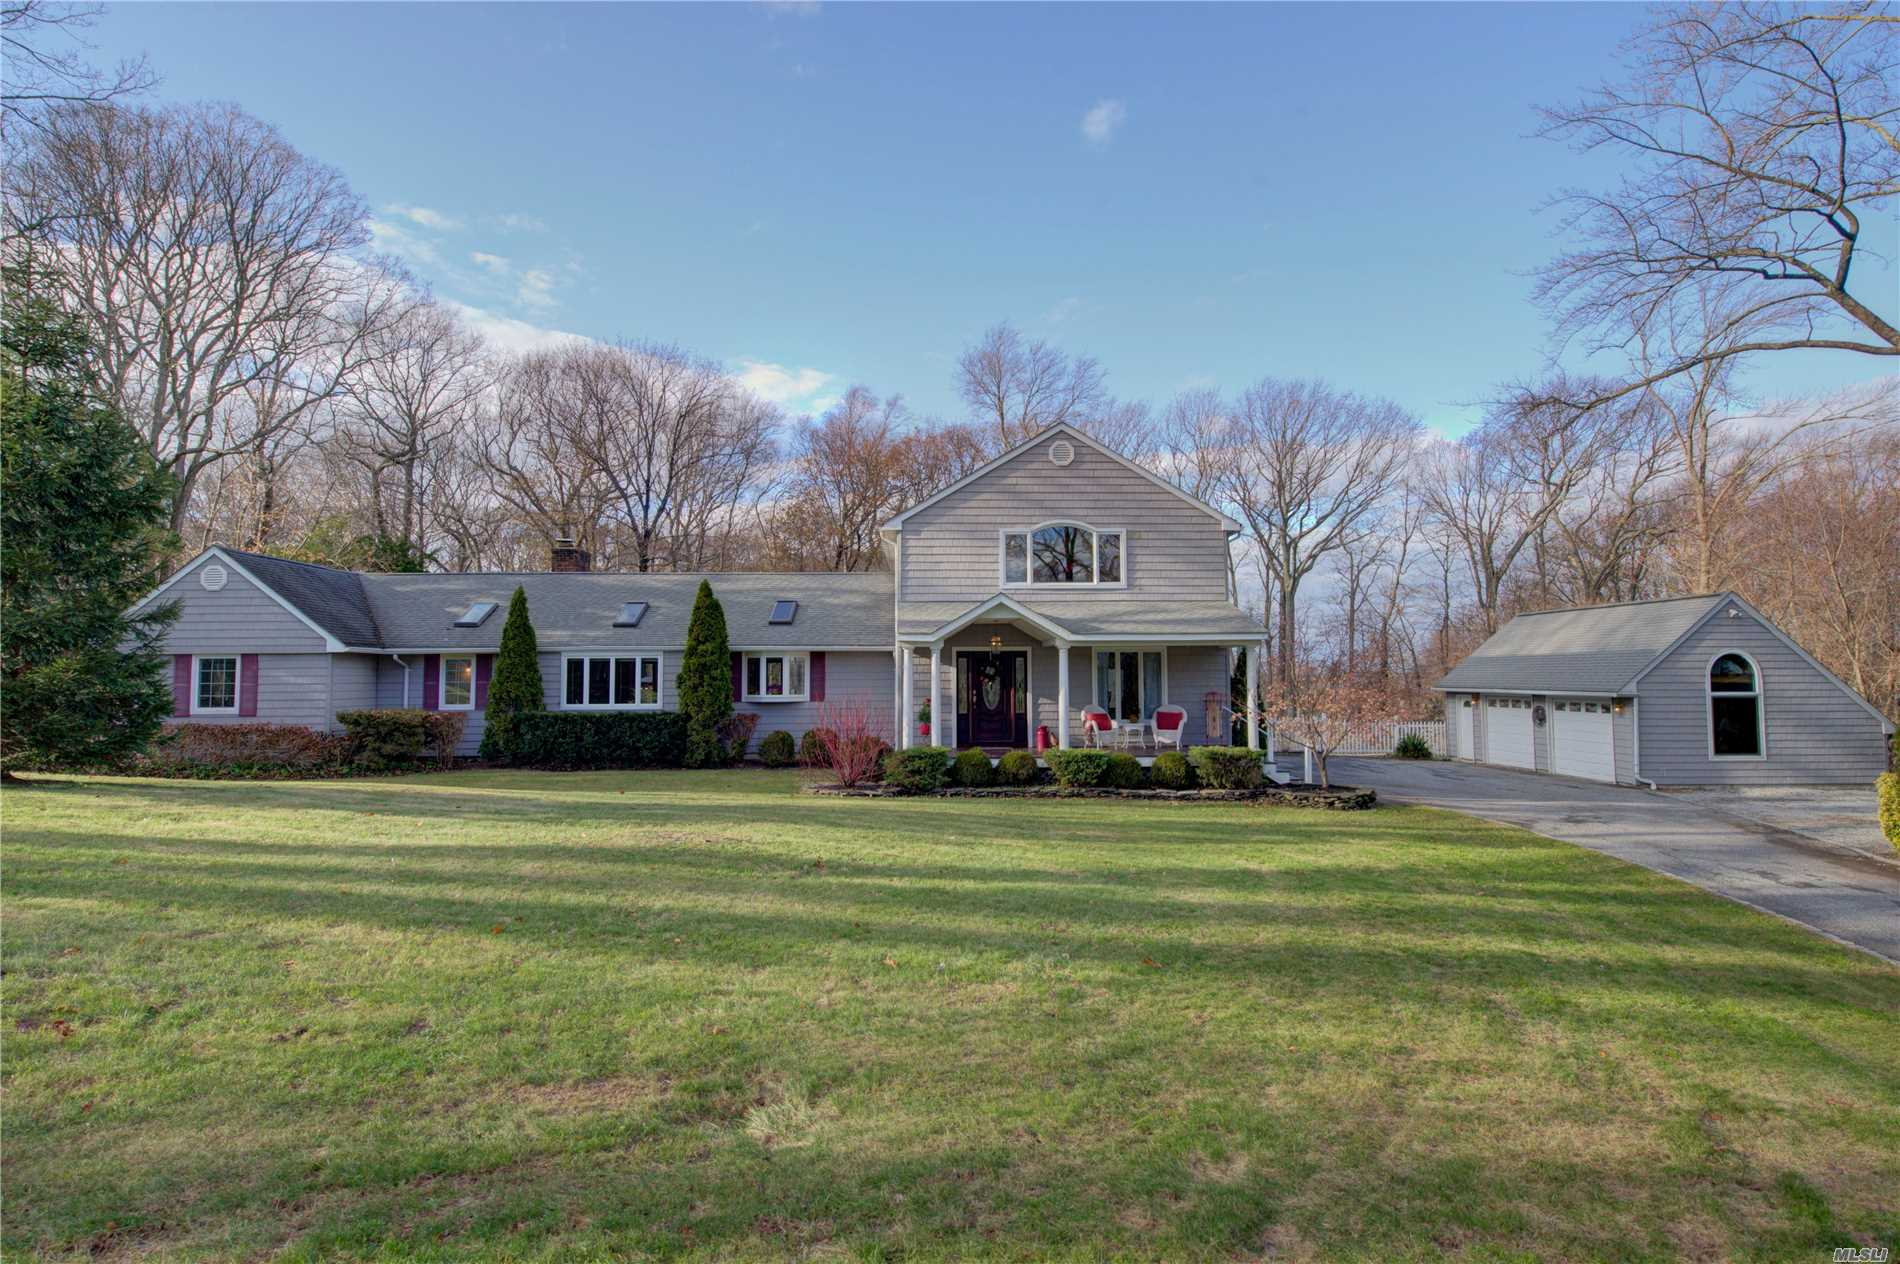 This Is The One! Lovely, Sunlit Forever Home Nestled On 2 Acres In Desirable Cul-De-Sac Offers Serenity & Privacy Surrounded By Nature's Best. With Vaulted Ceilings, Open Flow Living Spaces, Master Bedroom Suite Options On 1st Or 2nd Floor W/ Balcony Overlooking Northport Harbor, Lush Gardens, Lawns & Salt Water Pool. Enjoy A Country Lifestyle Just Minutes From Dining, Shopping, Beach, Blue Ribbon Award Winning Harborfields Schools, Lirr & Parkways!